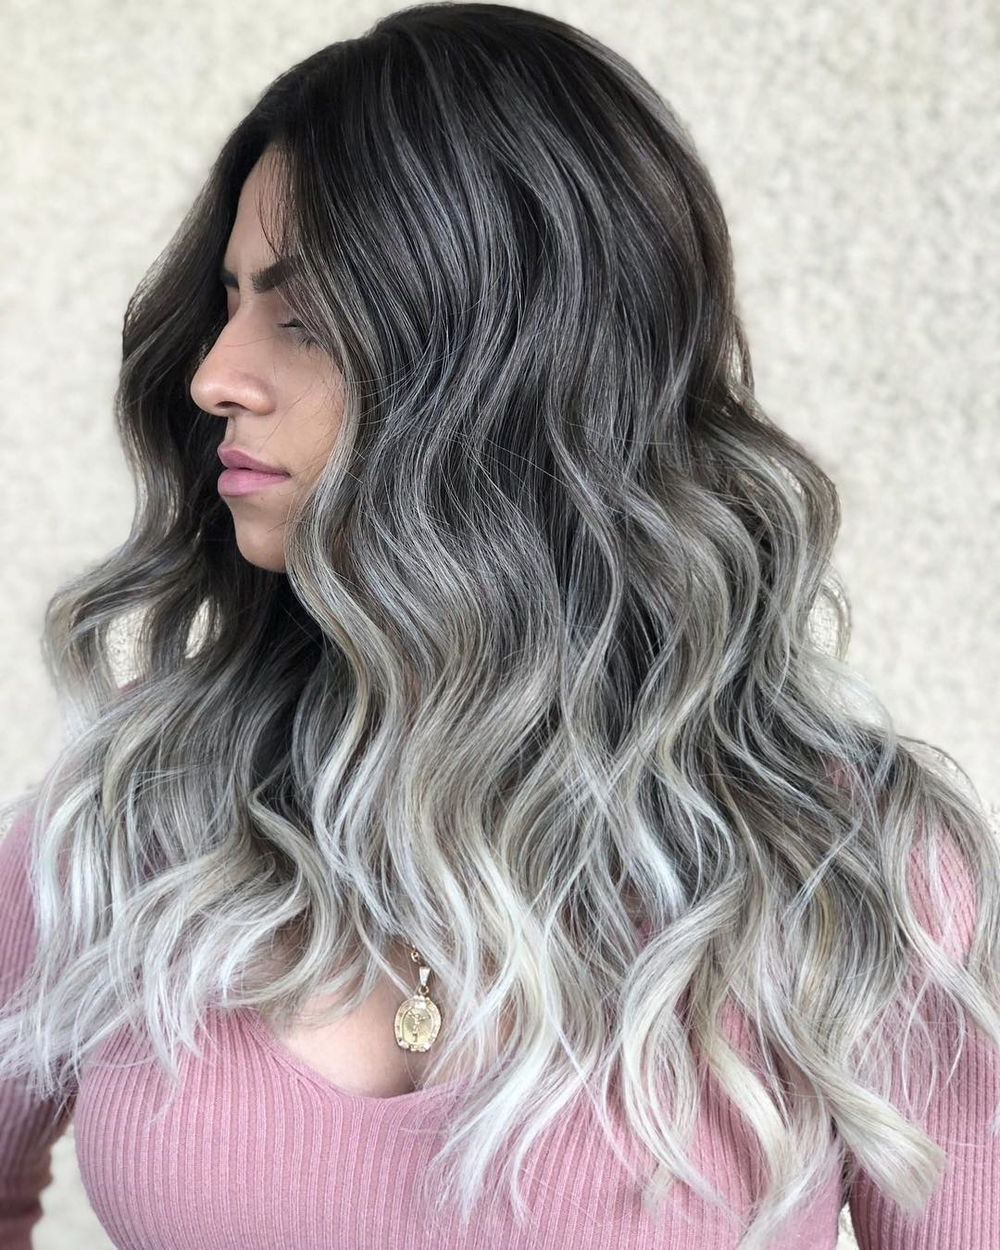 60 Shades Of Grey: Silver And White Highlights For Eternal Inside Dimensional Dark Roots To Red Ends Balayage Hairstyles (View 16 of 20)